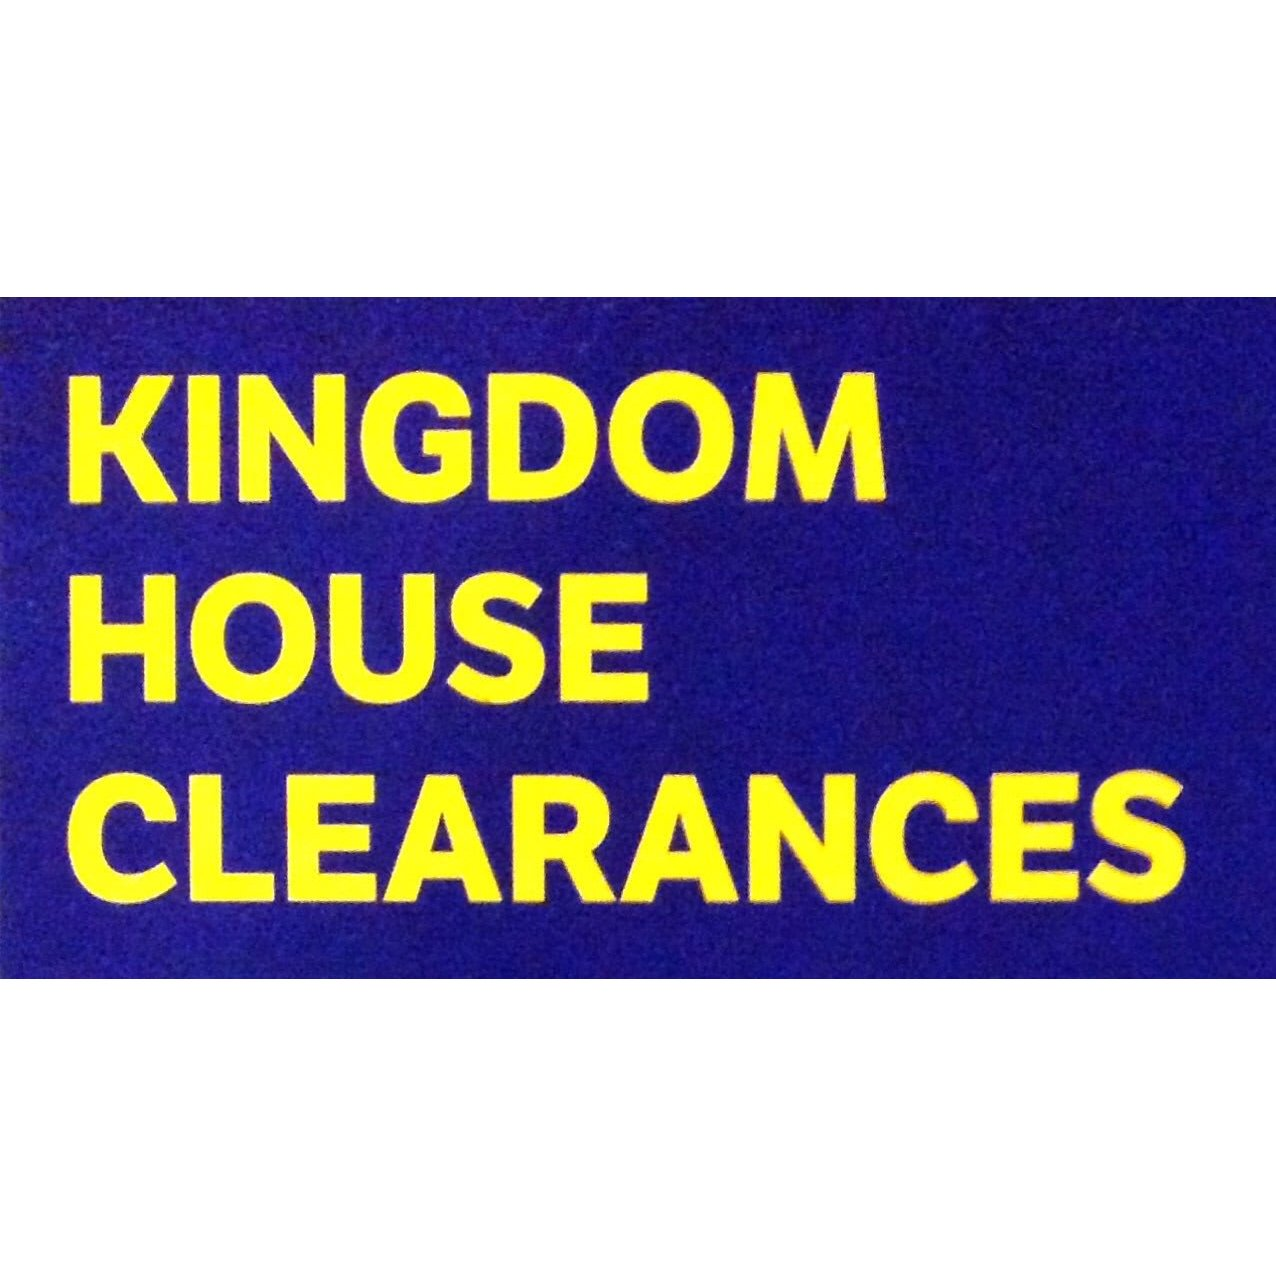 Kingdom House Clearances - Dunfermline, Fife KY12 8AW - 01383 666073 | ShowMeLocal.com